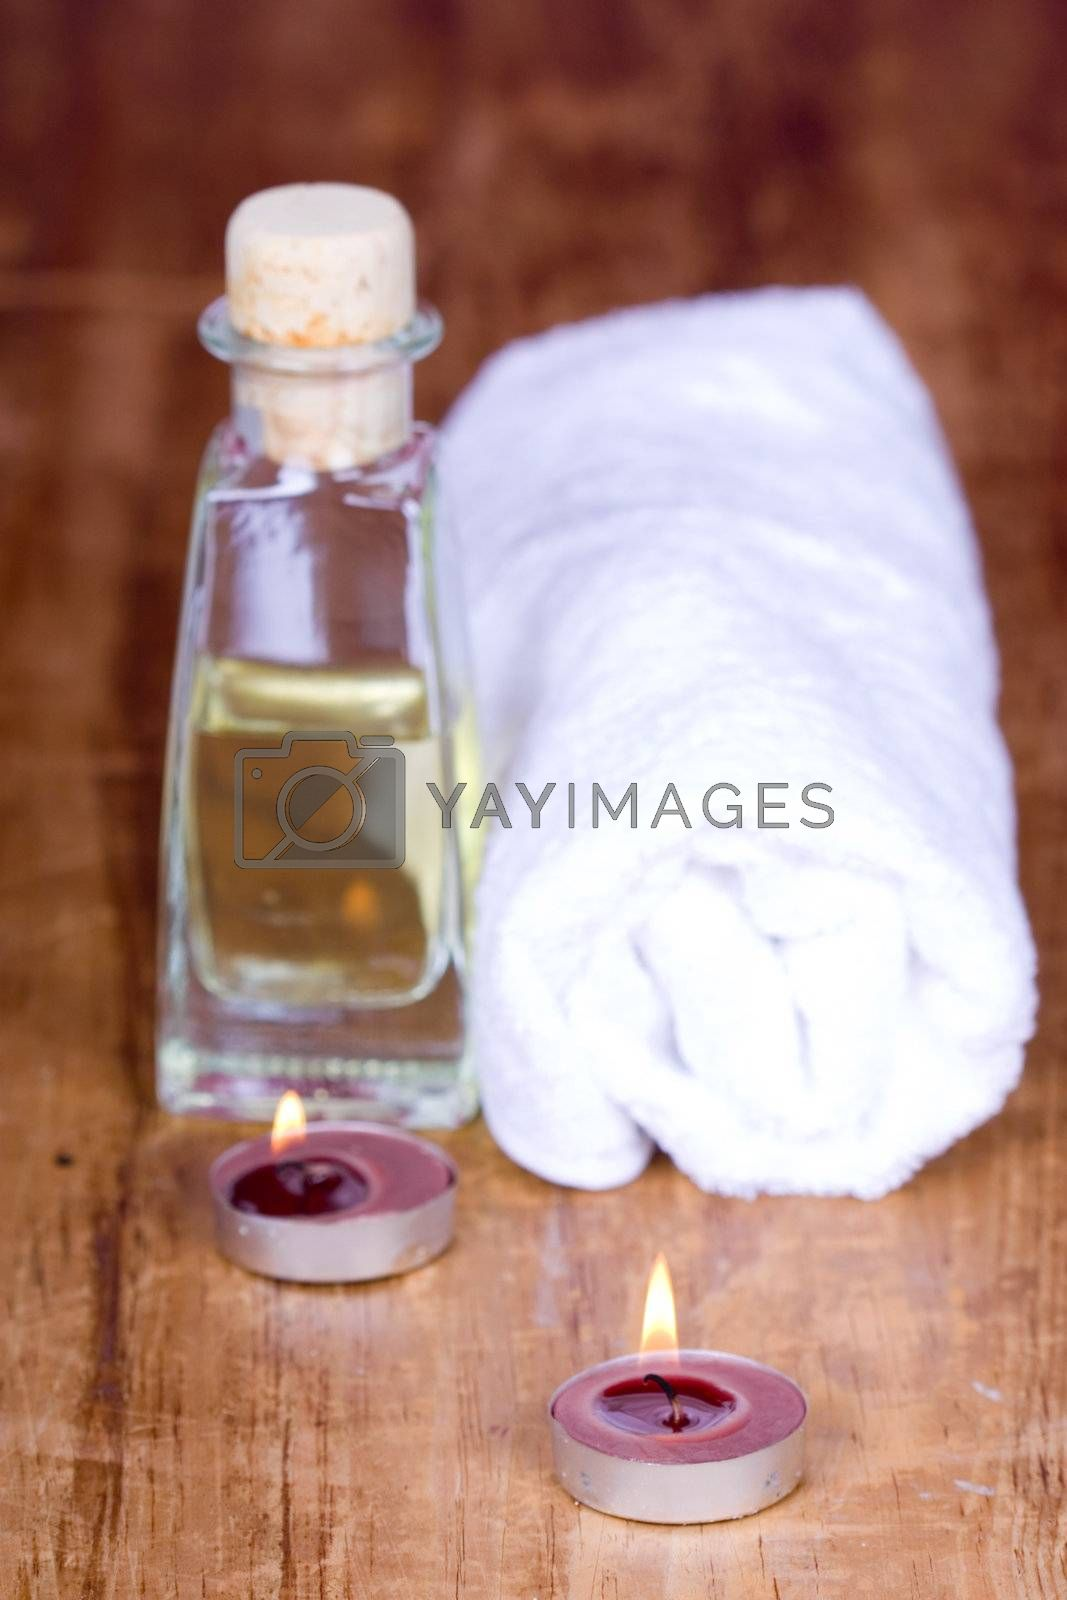 spa products (towel, oil, candles) on wooden background